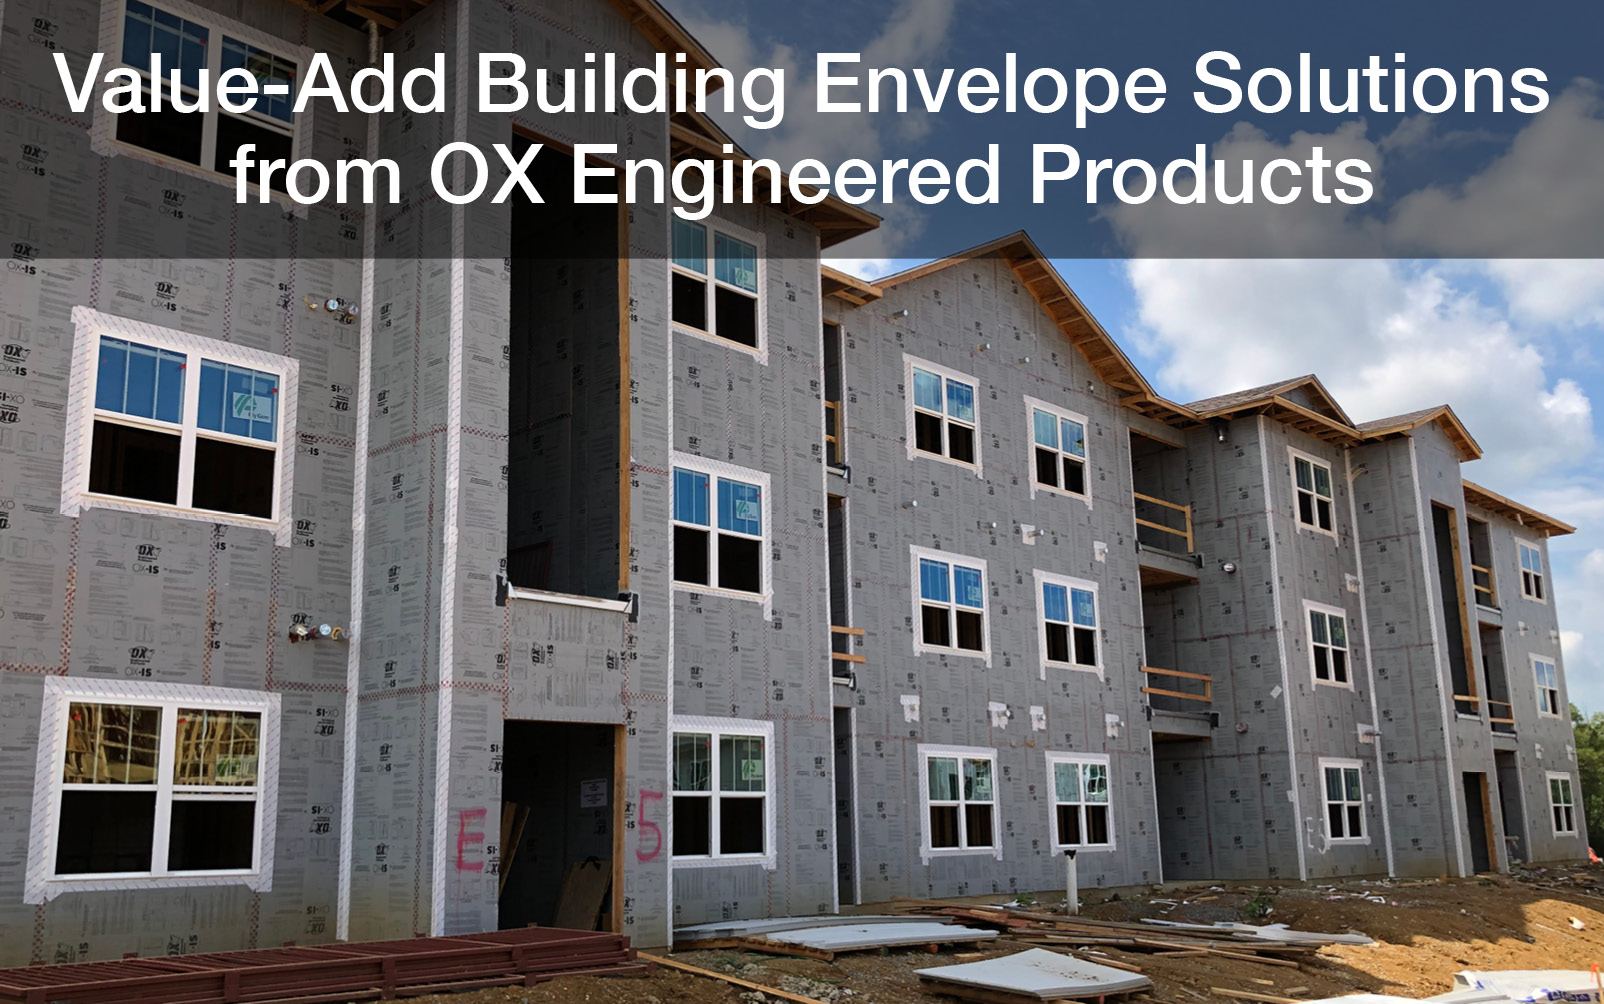 Value-Add Building Envelope Solutions from OX Engineered Products